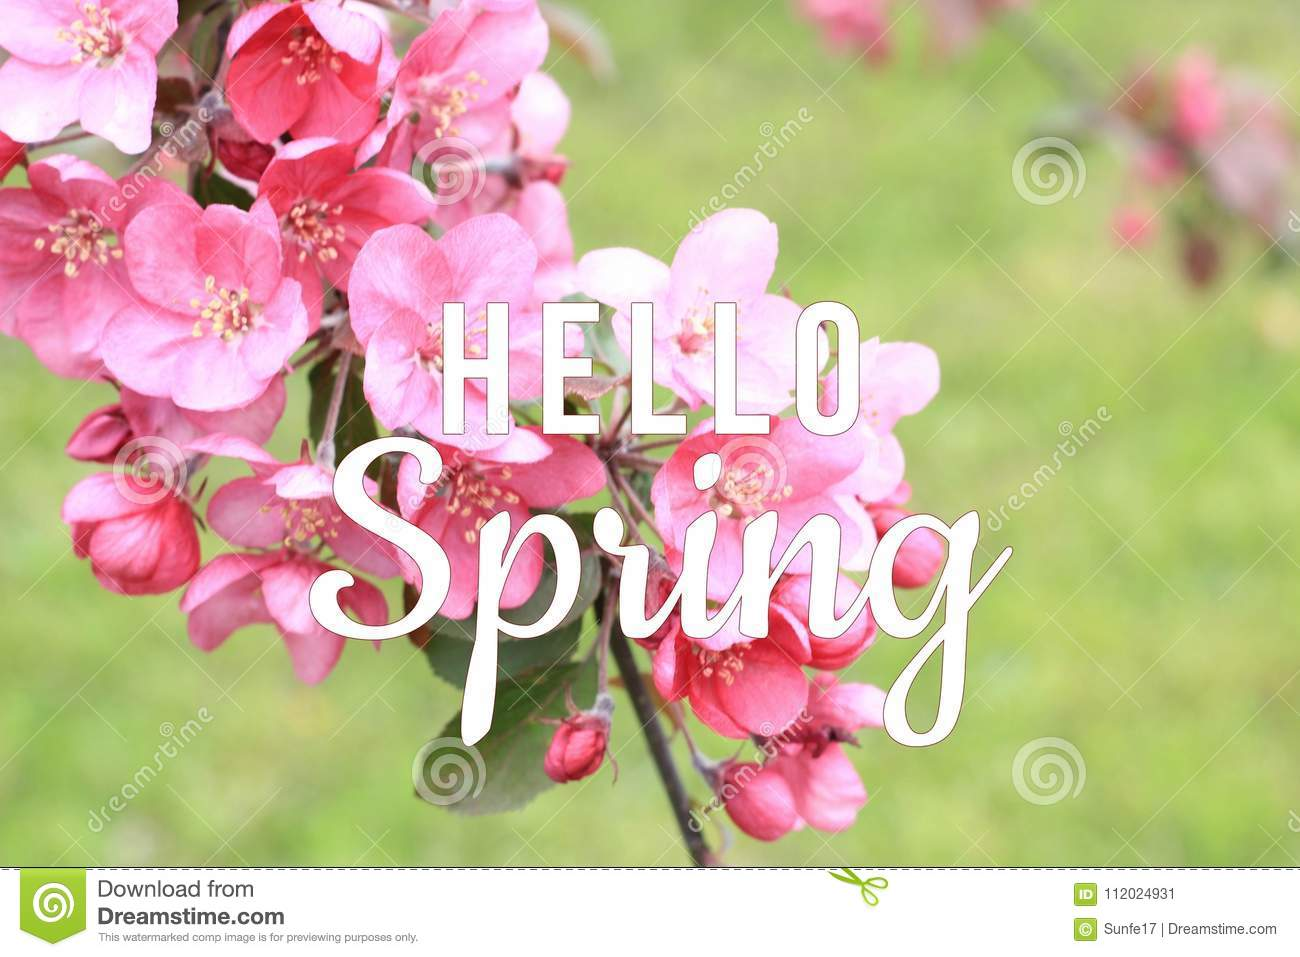 Hello Spring text on blooming tree branch background